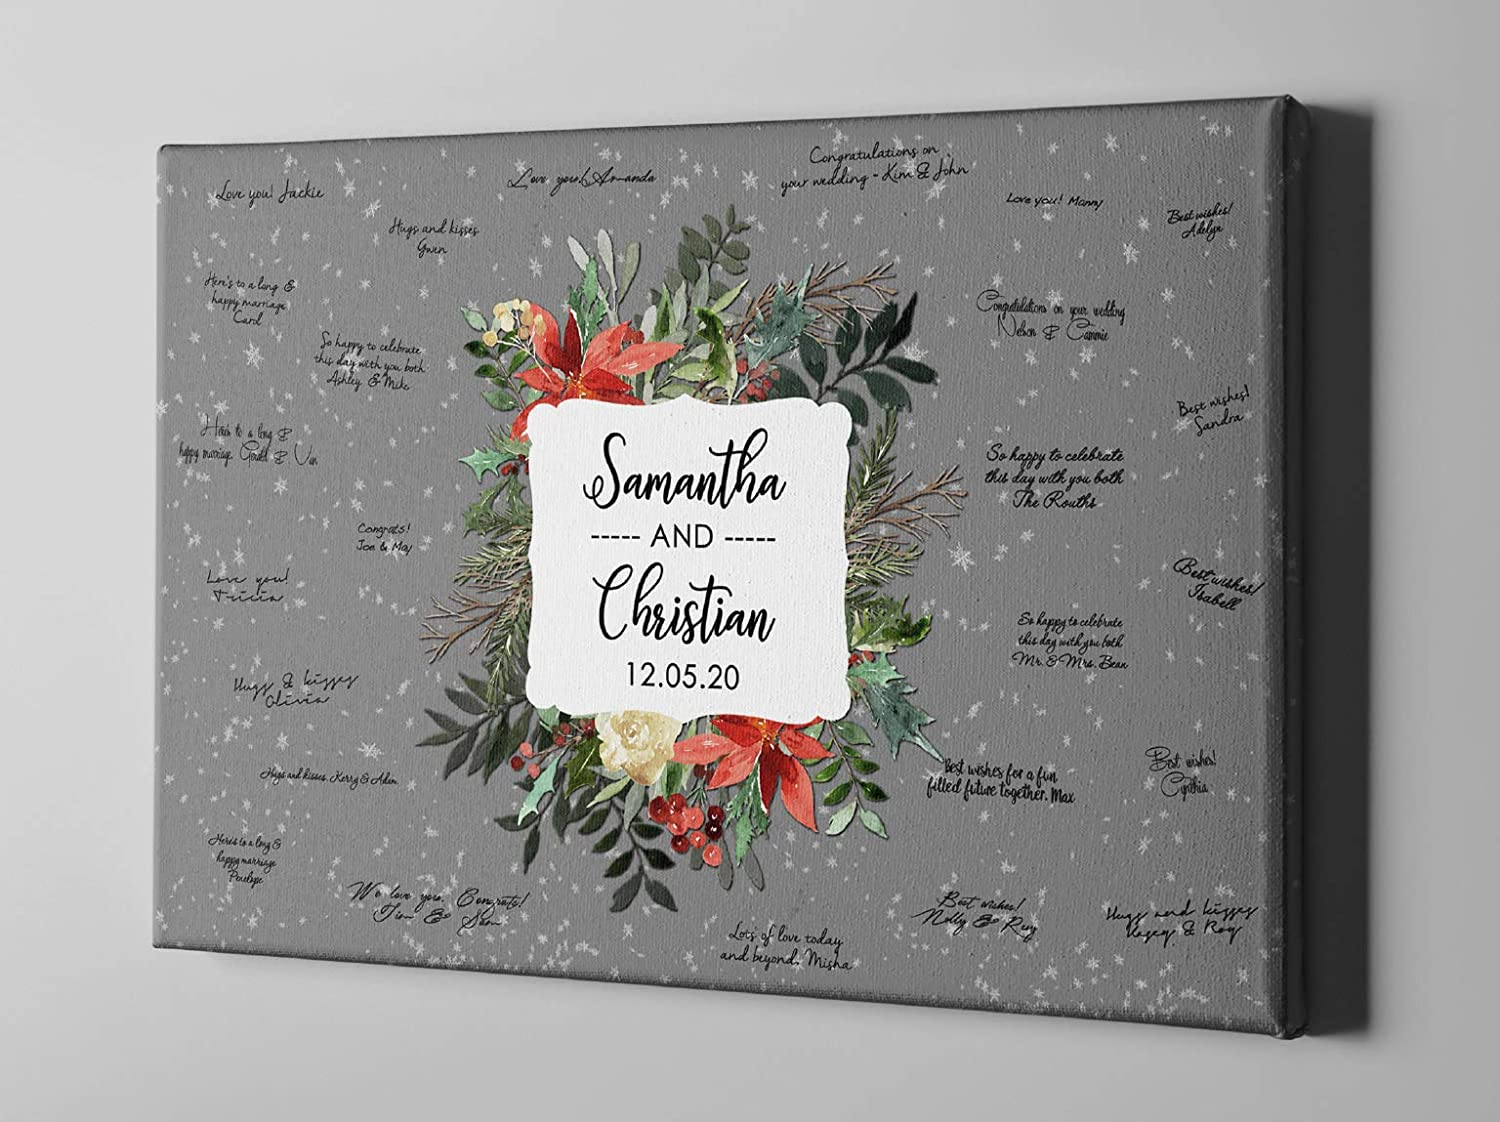 Amazon Com Christmas Canvas Guest Book Holiday Party Custom Guestbook Winter Wedding Decor Ideas Gift For Newlyweds Cgb346 Handmade